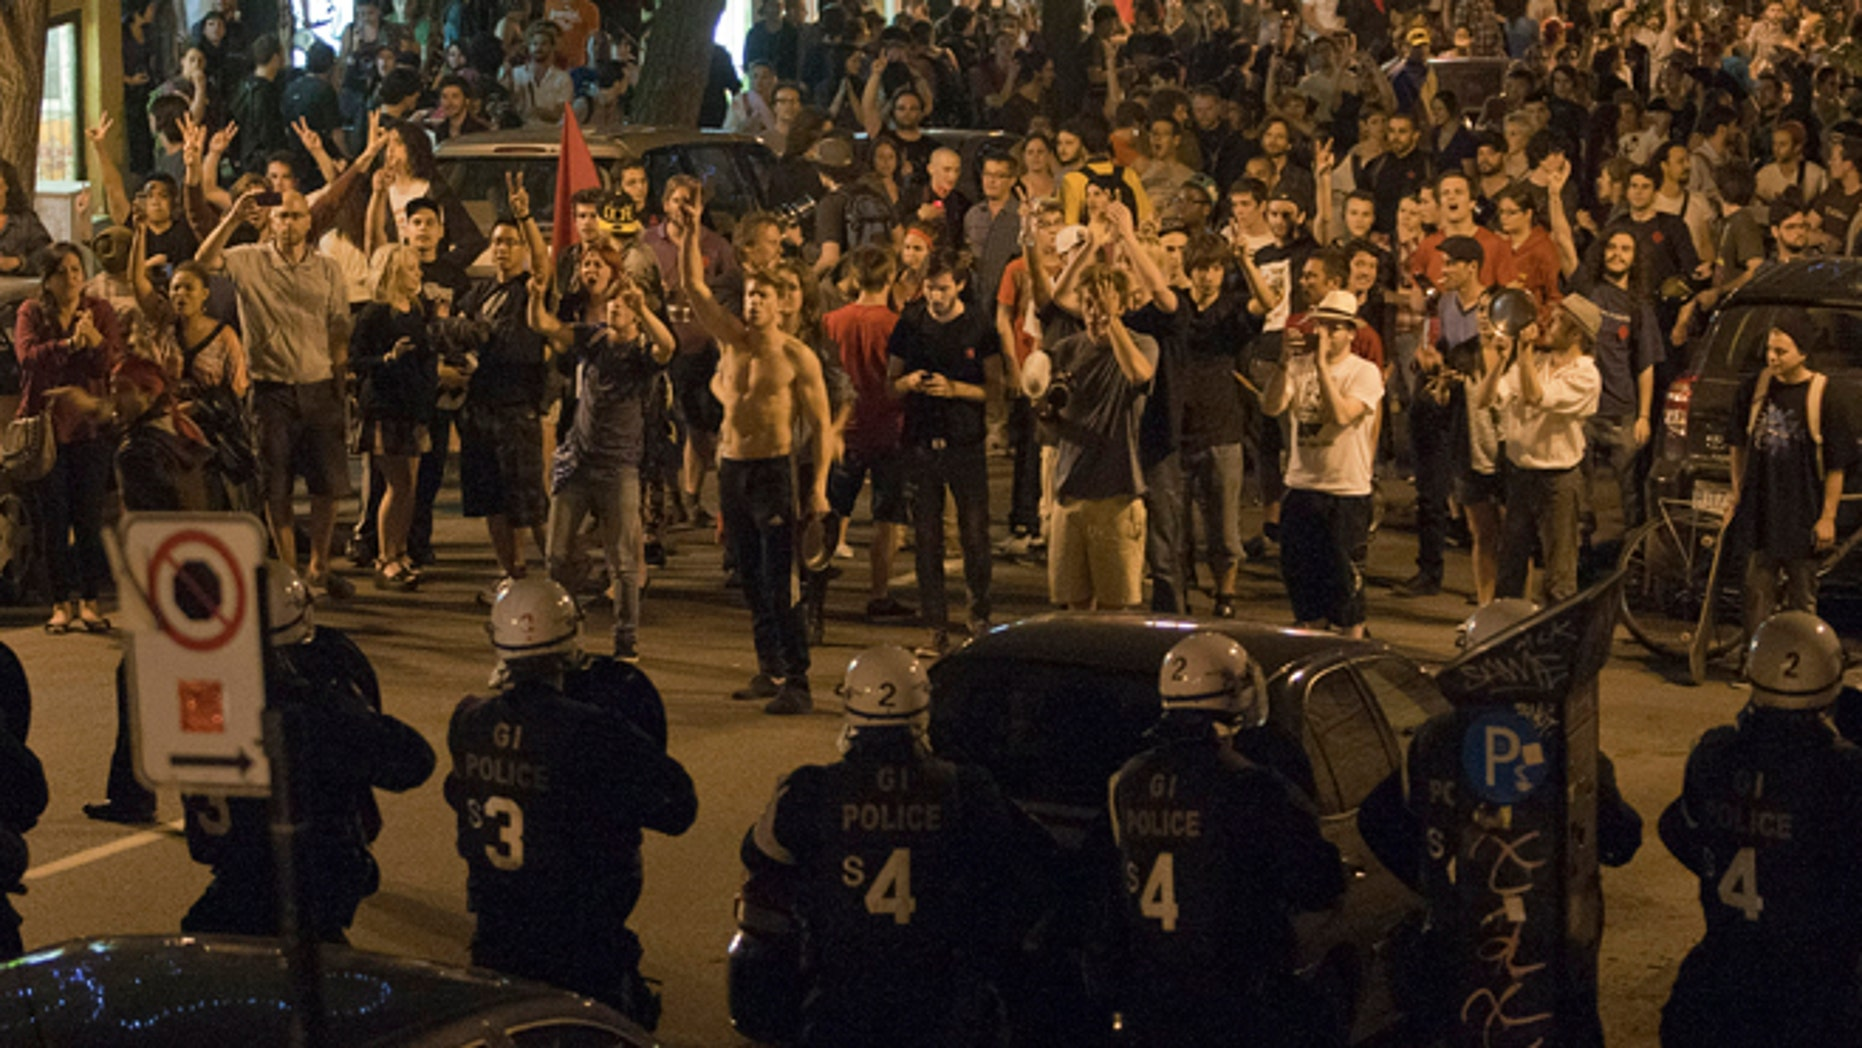 May 24, 2012: Protesters and riot police face-off during a march against tuition fee hikes in Montreal.